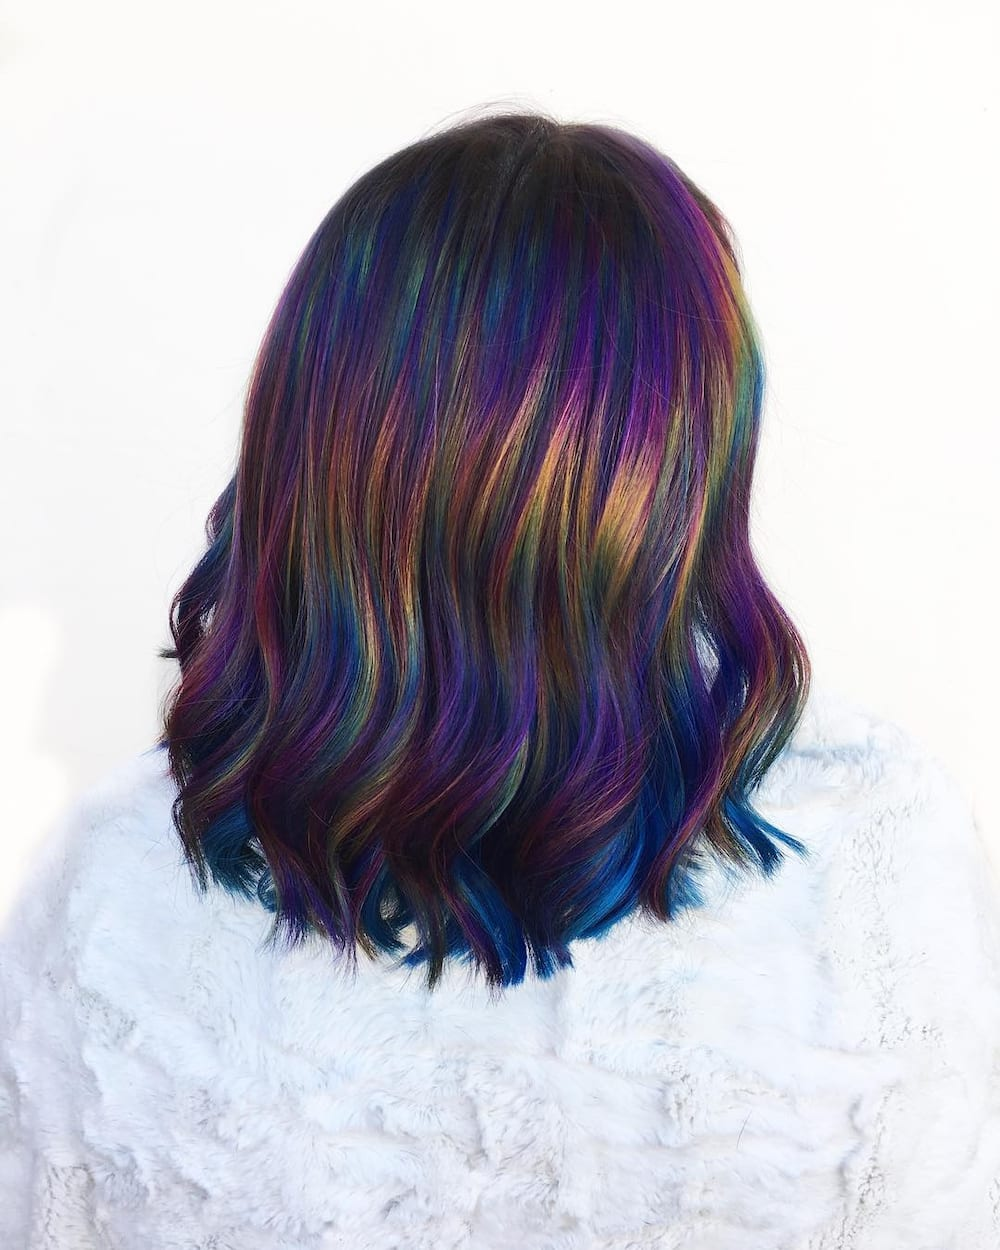 25 Galaxy Hair Color Ideas To Try In 2019 Legit Ng